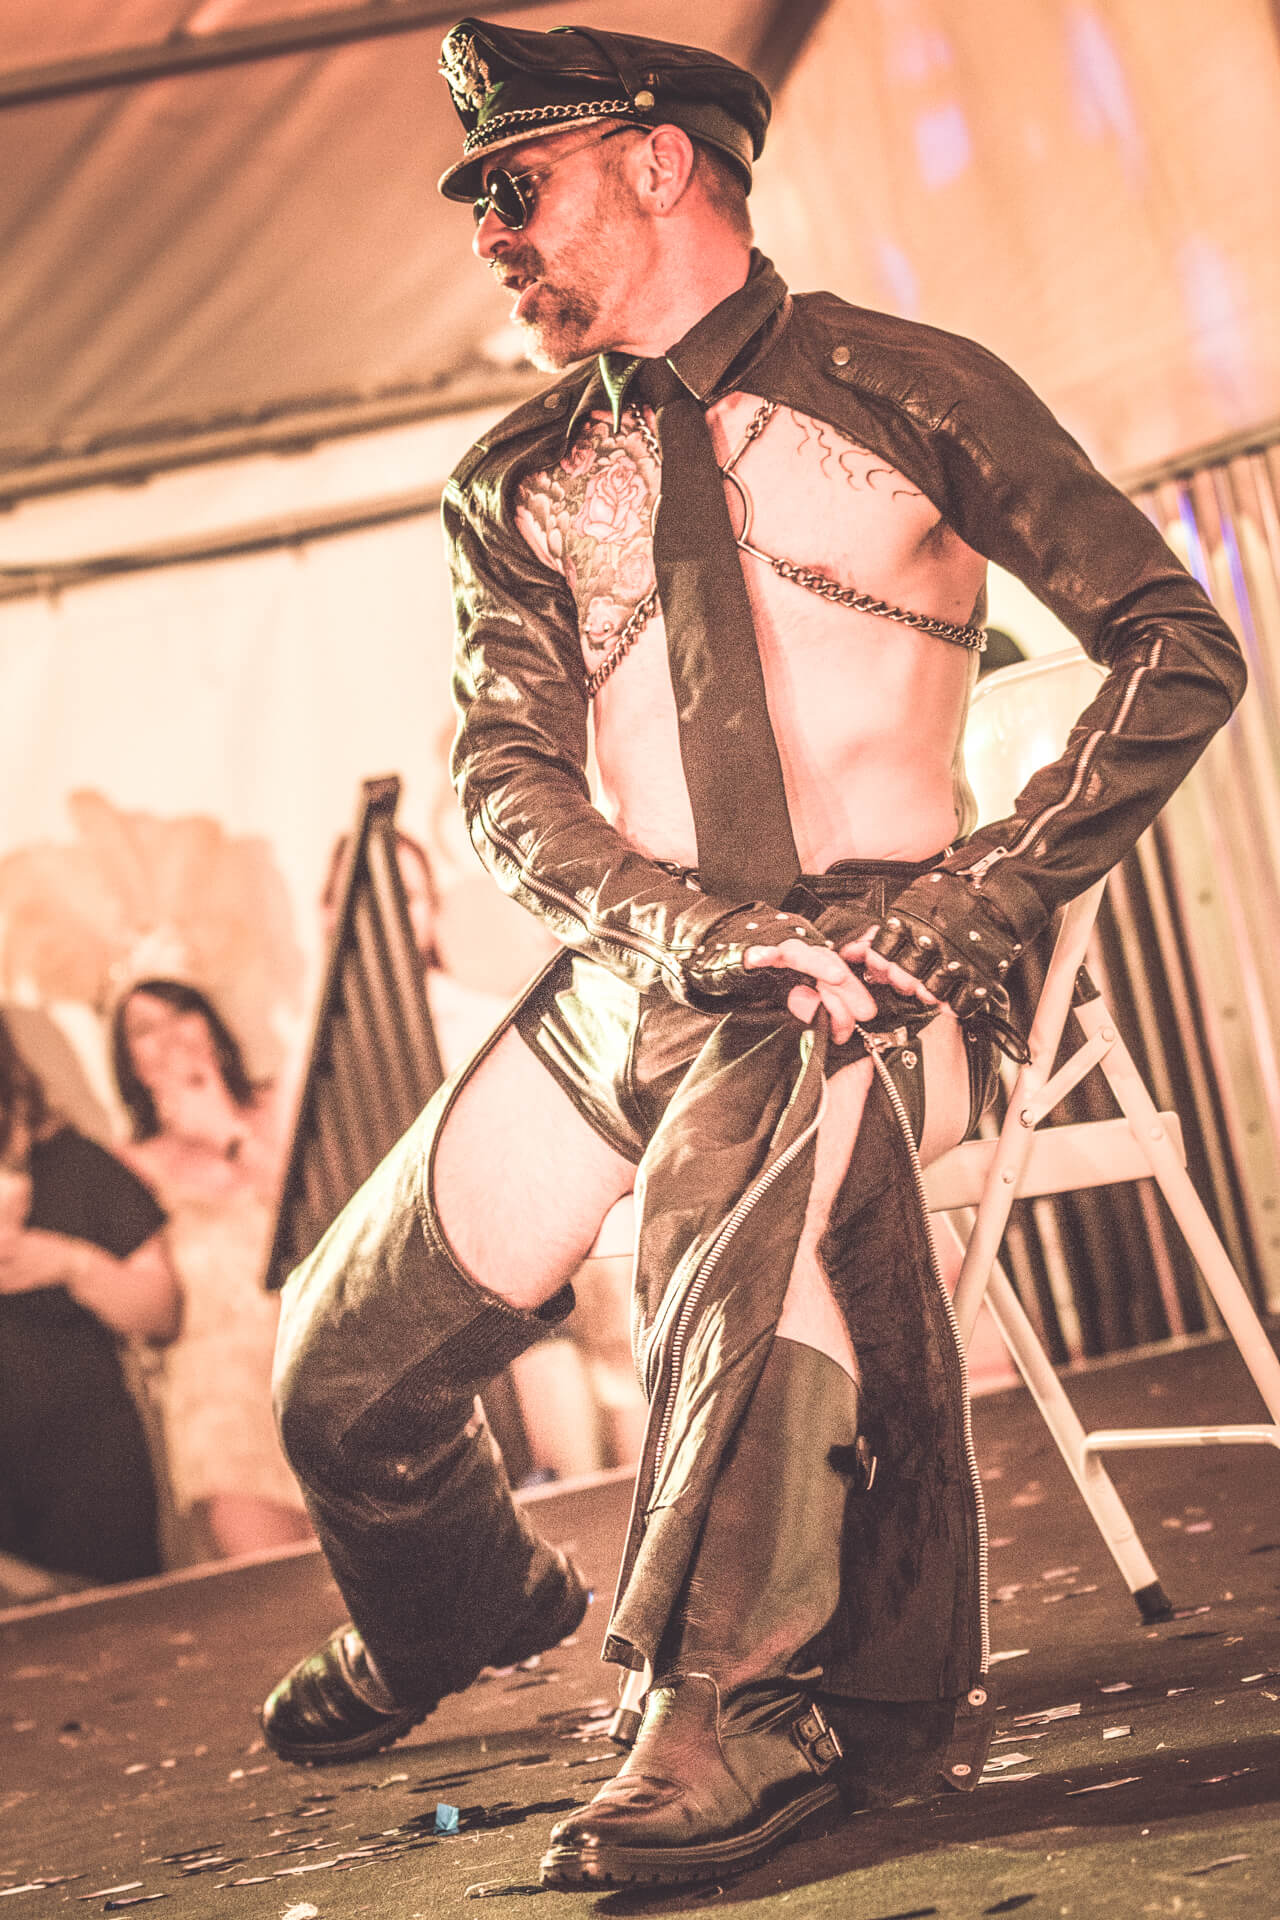 An onstage shot of a male burlesque performer taken at Dubs of Anarchy in 2019. He is seen sat on a chair as he unzips and removes his leather chaps. He (still) wears a leather cap with a chain band, a chain chest harness, tight leather shorts, a leather shrug with zips, a neck tie, fingerless gloves, biker boots, and black aviator sunglasses.